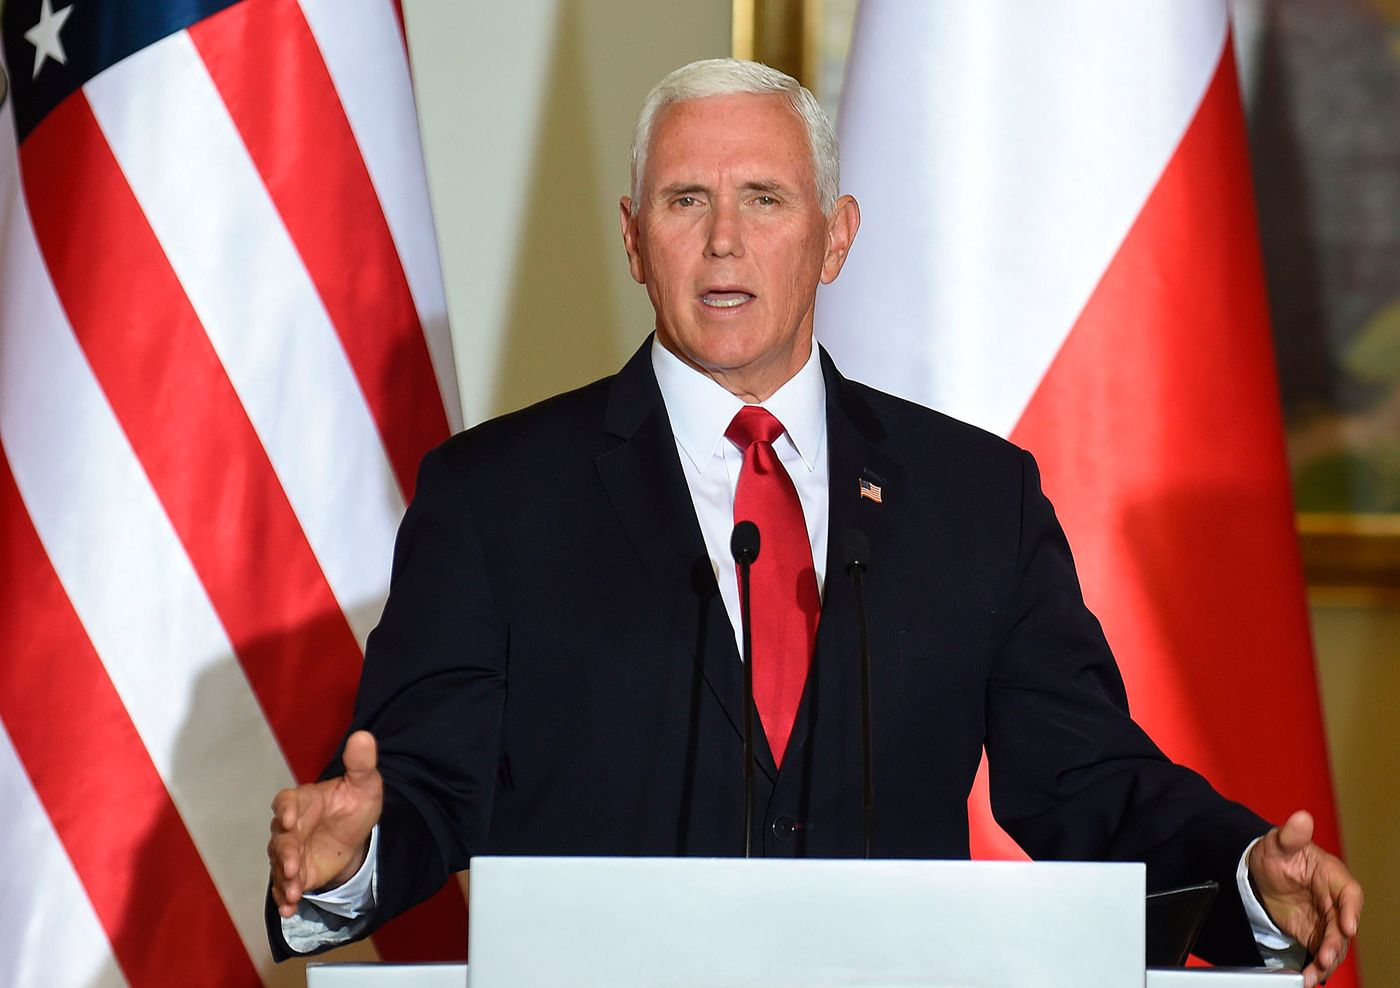 Time for Europe to Do More to Help Ukraine, Pence Says